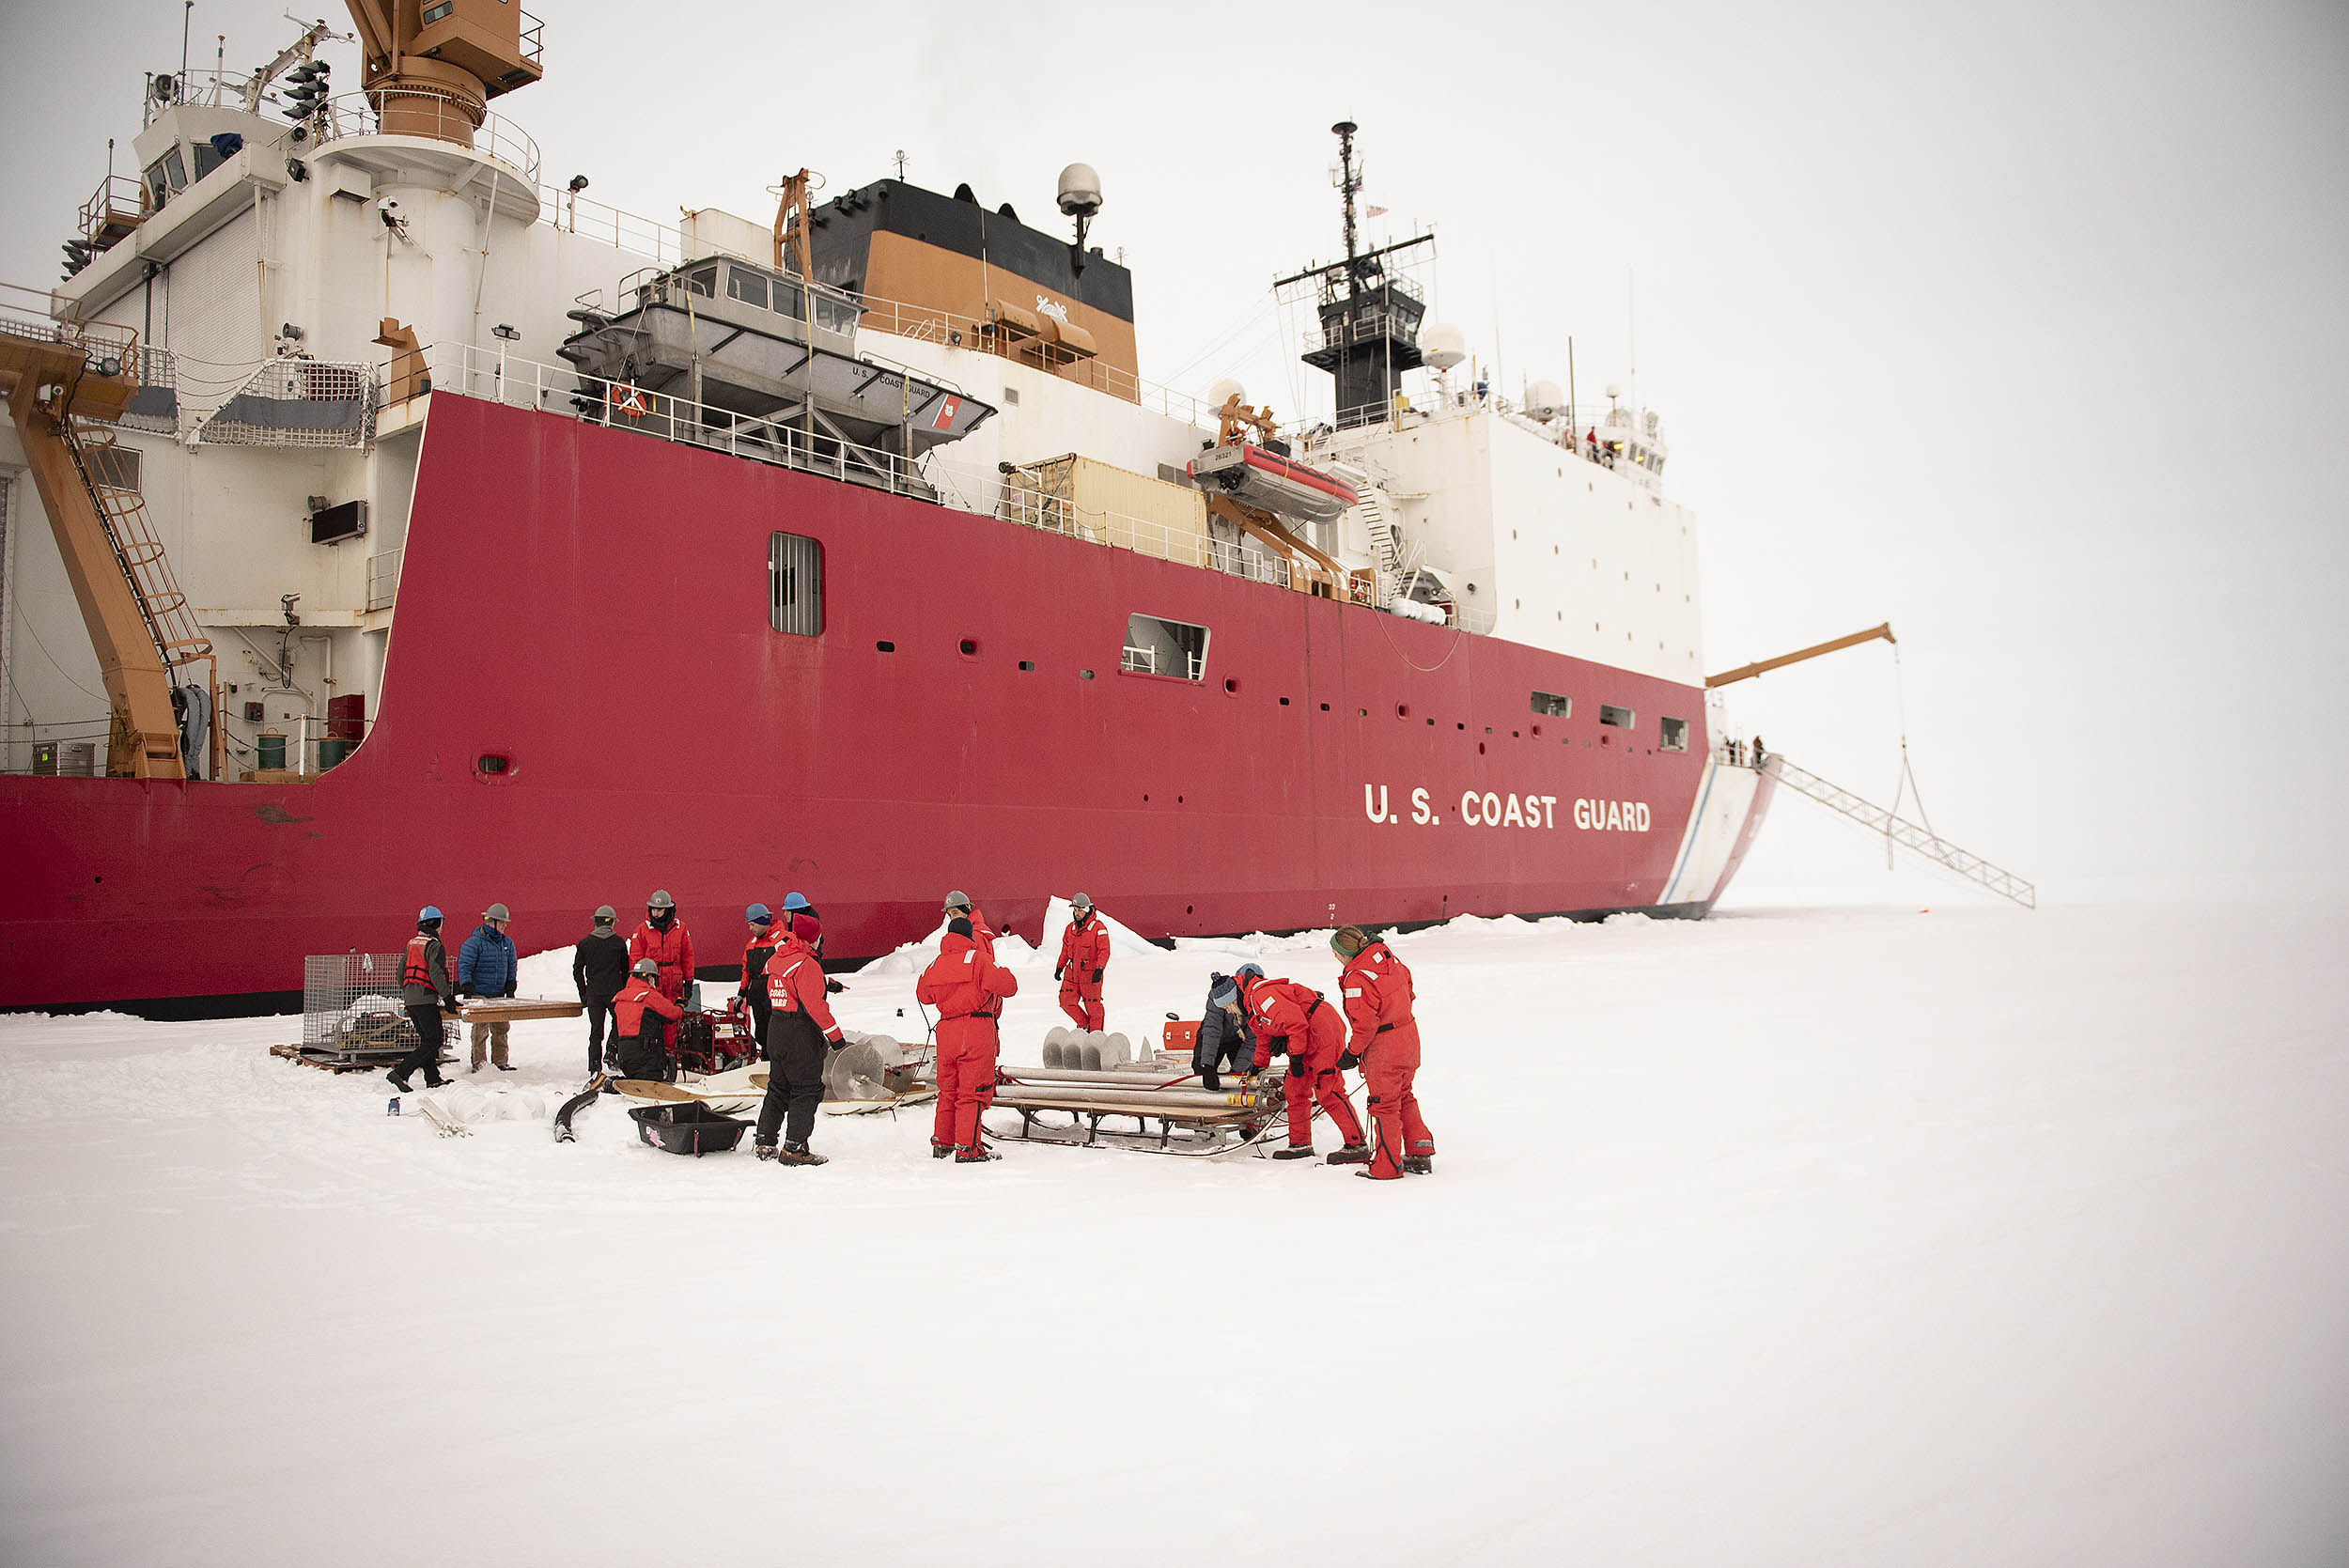 Scientists, engineers and crew members from the U.S. Coast Guard Cutter Healy prepare to unload gear on Oct. 2, 2018, about 715 miles north of Barrow, Alaska, in the Arctic. MUST CREDIT: U.S. Coast Guard photo by Senior Chief Petty Officer NyxoLyno Cangemi